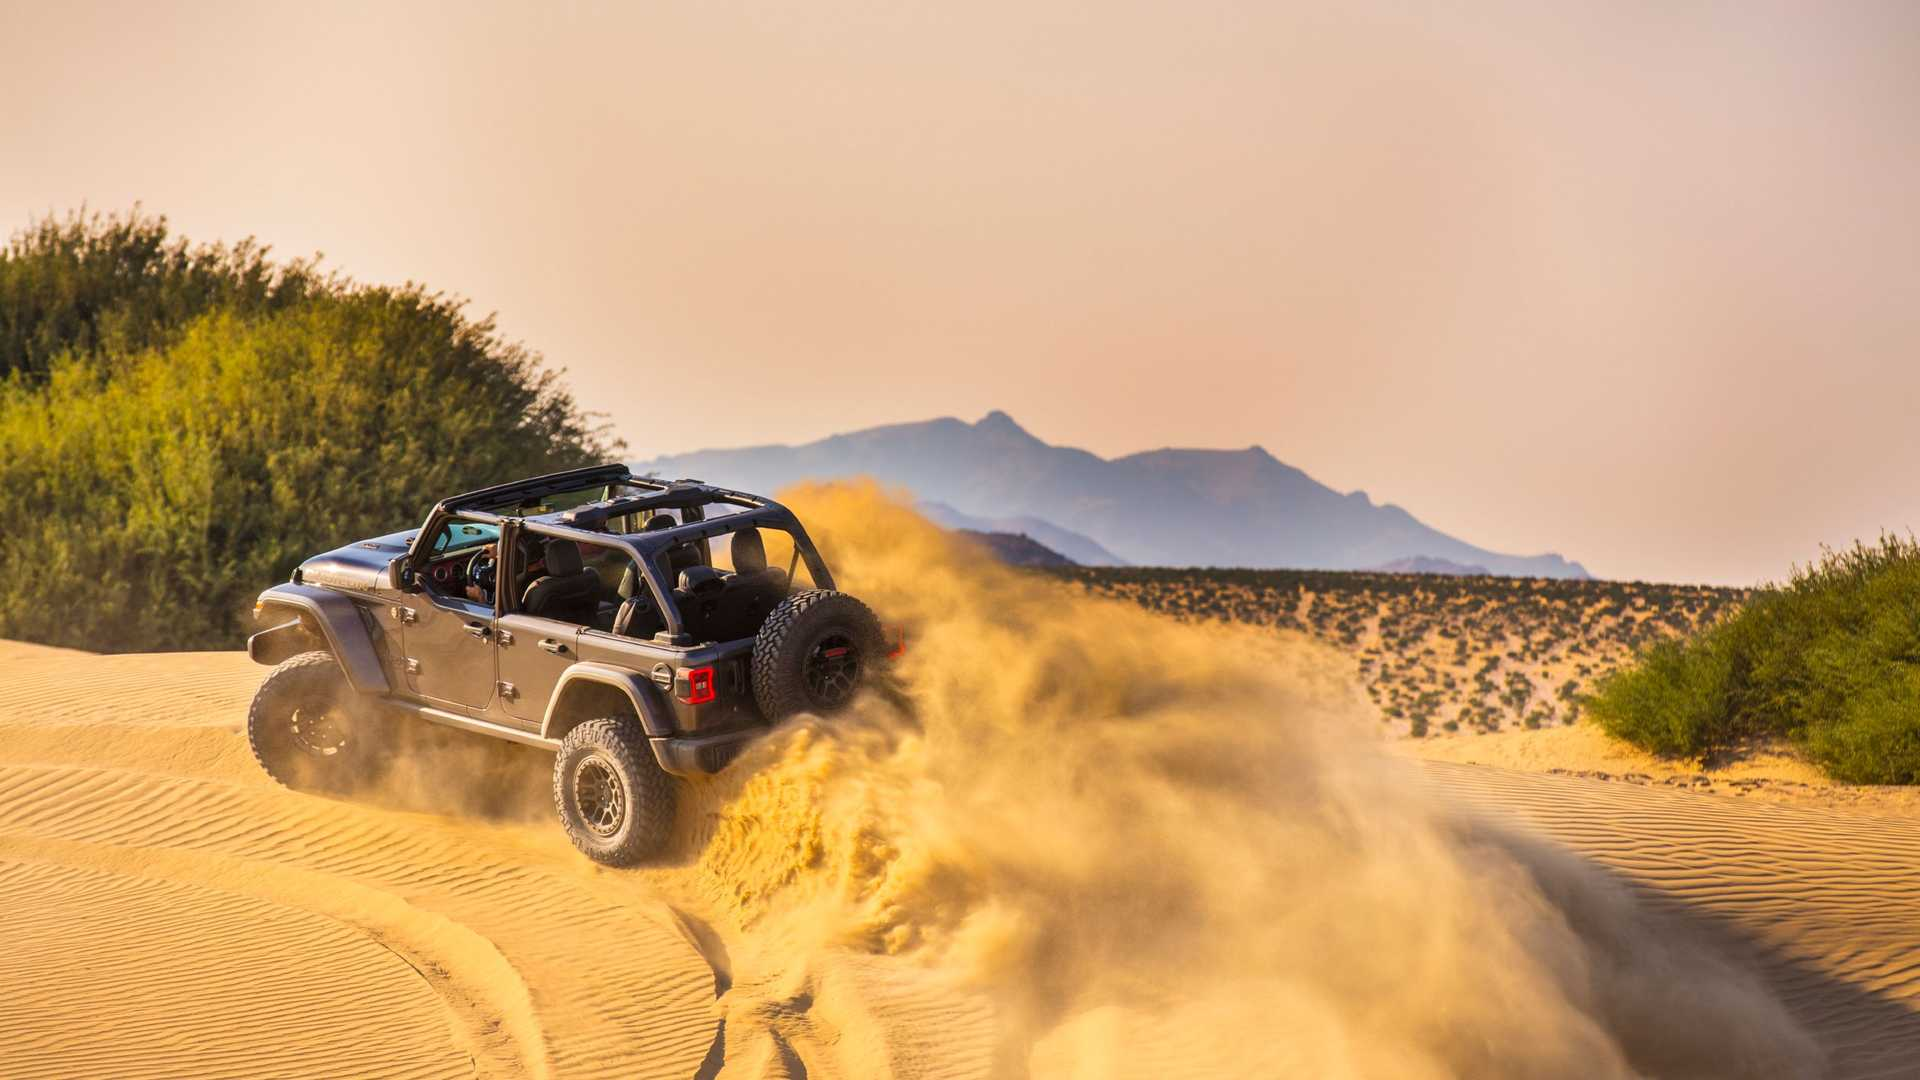 2021-jeep-wrangler-rubicon-392-side-view-in-desert-2